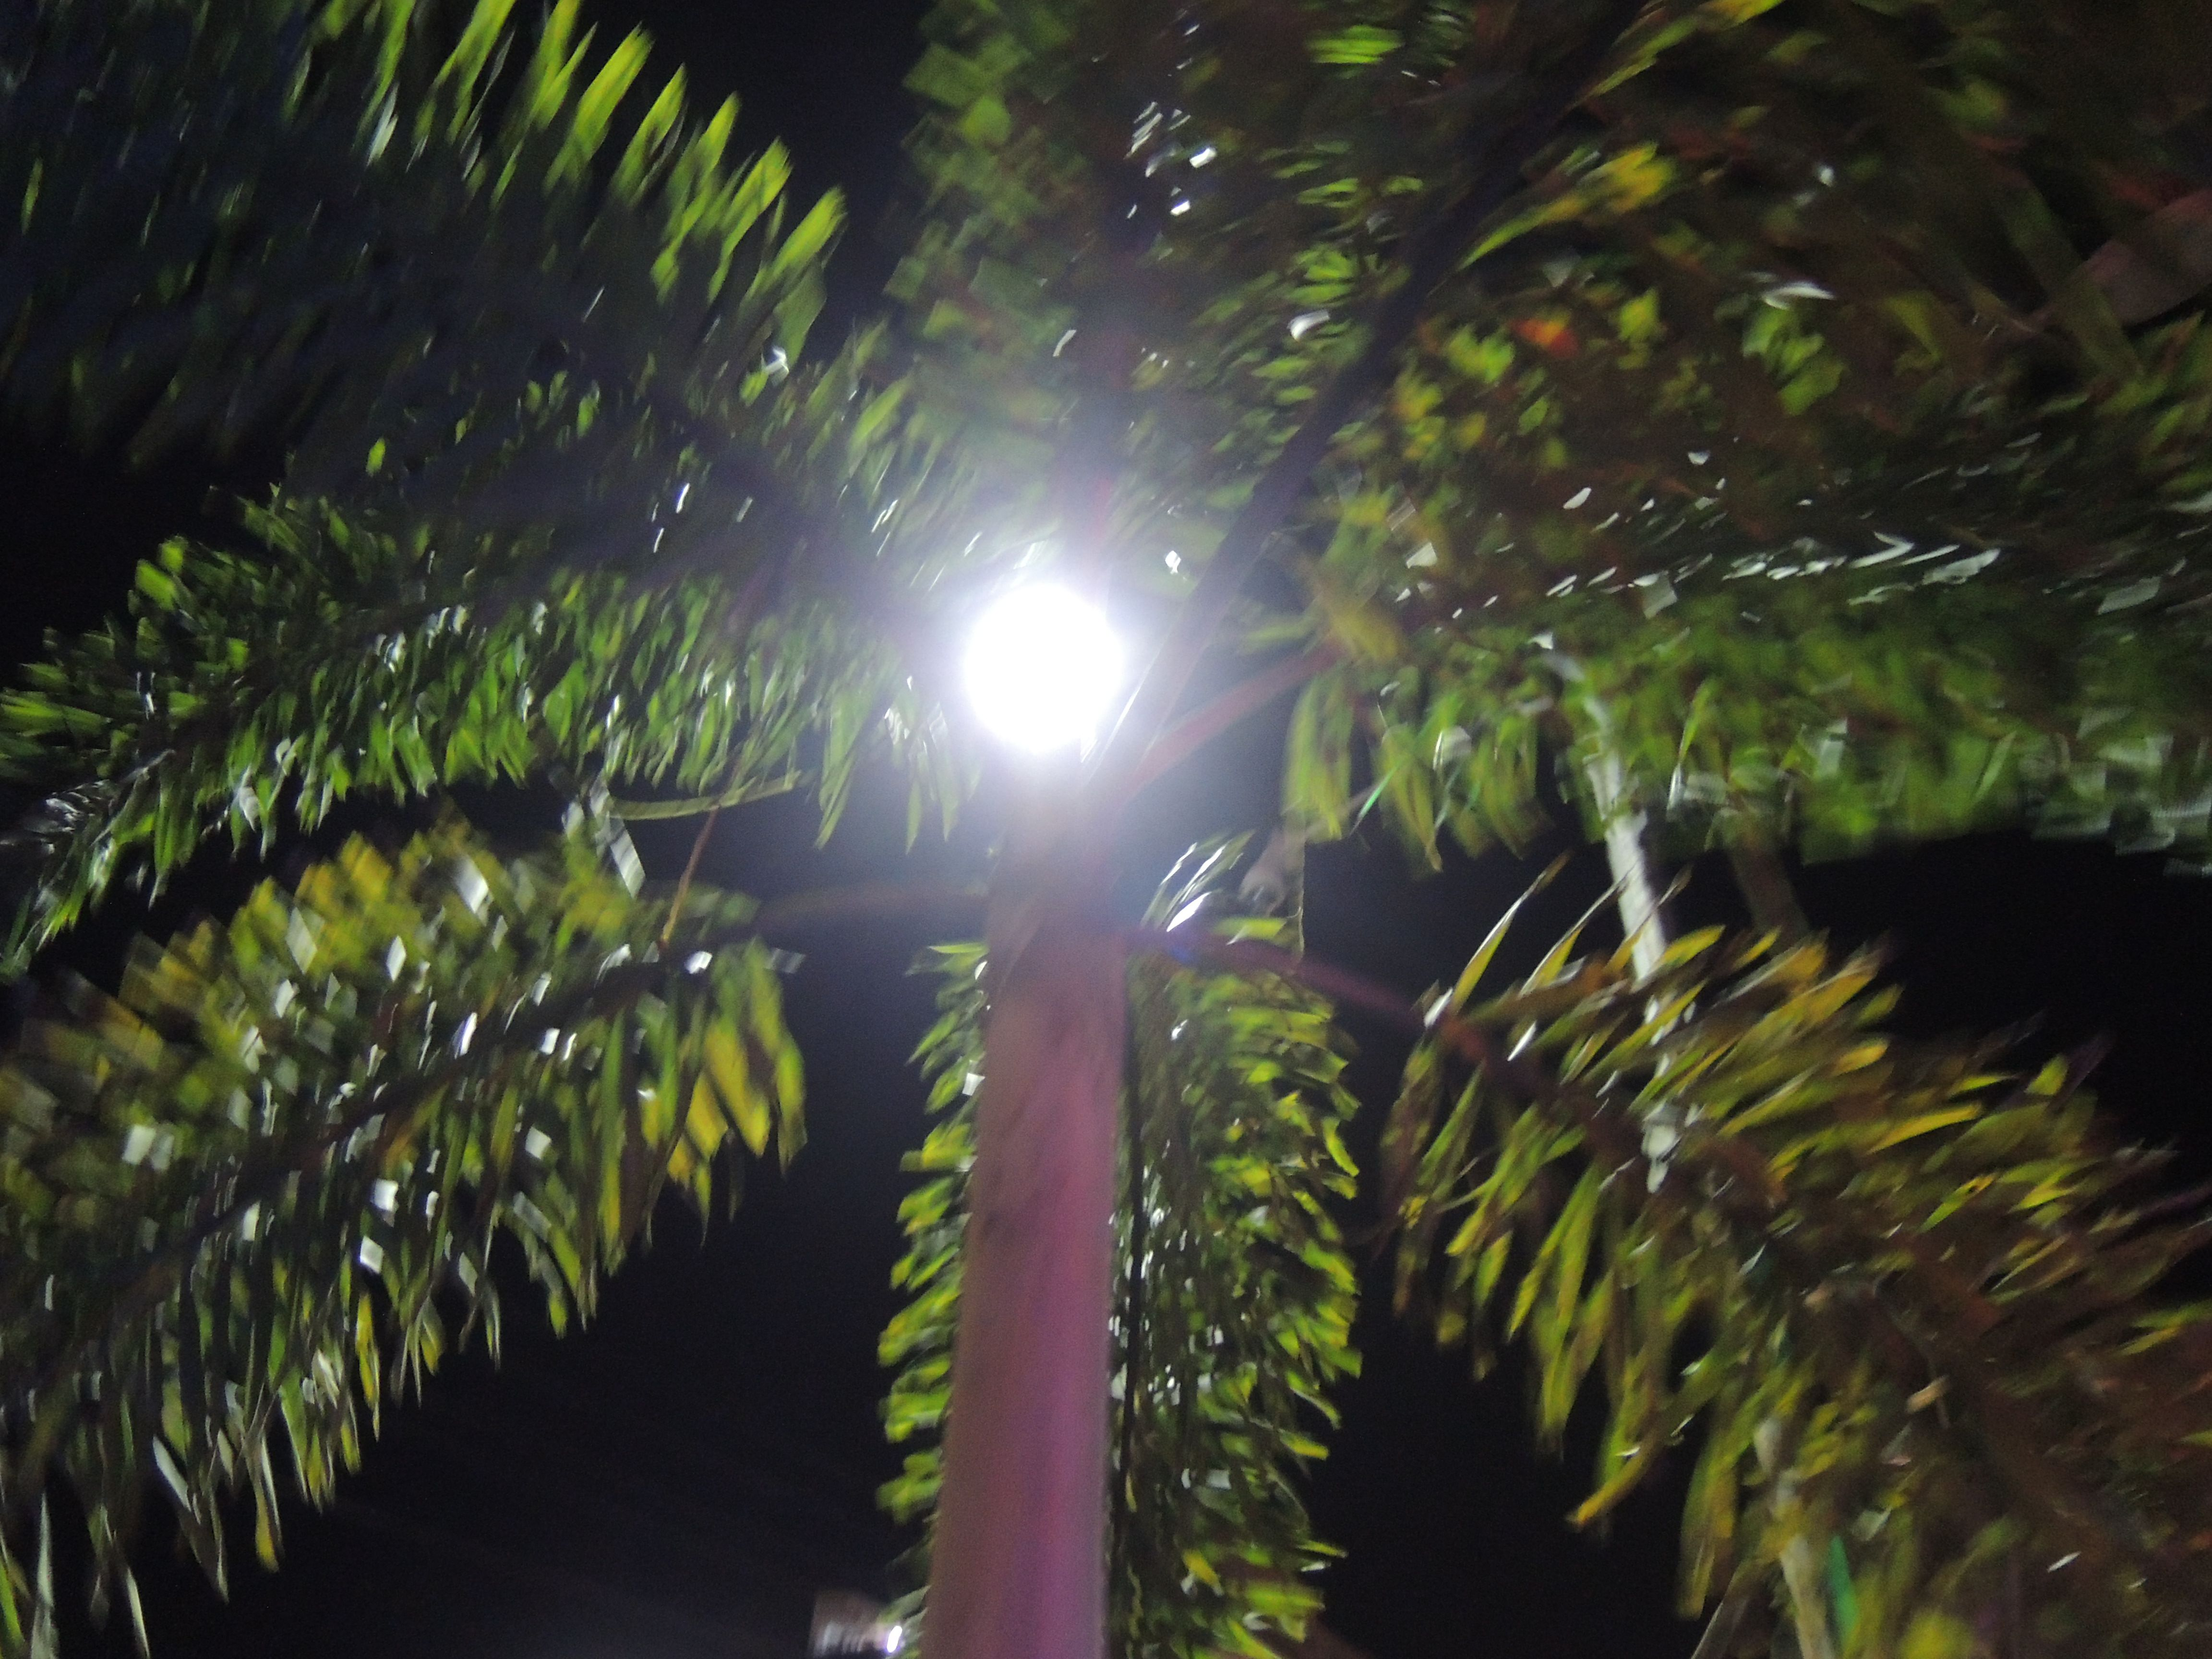 Lighting your path at night. Plant near a lamp post